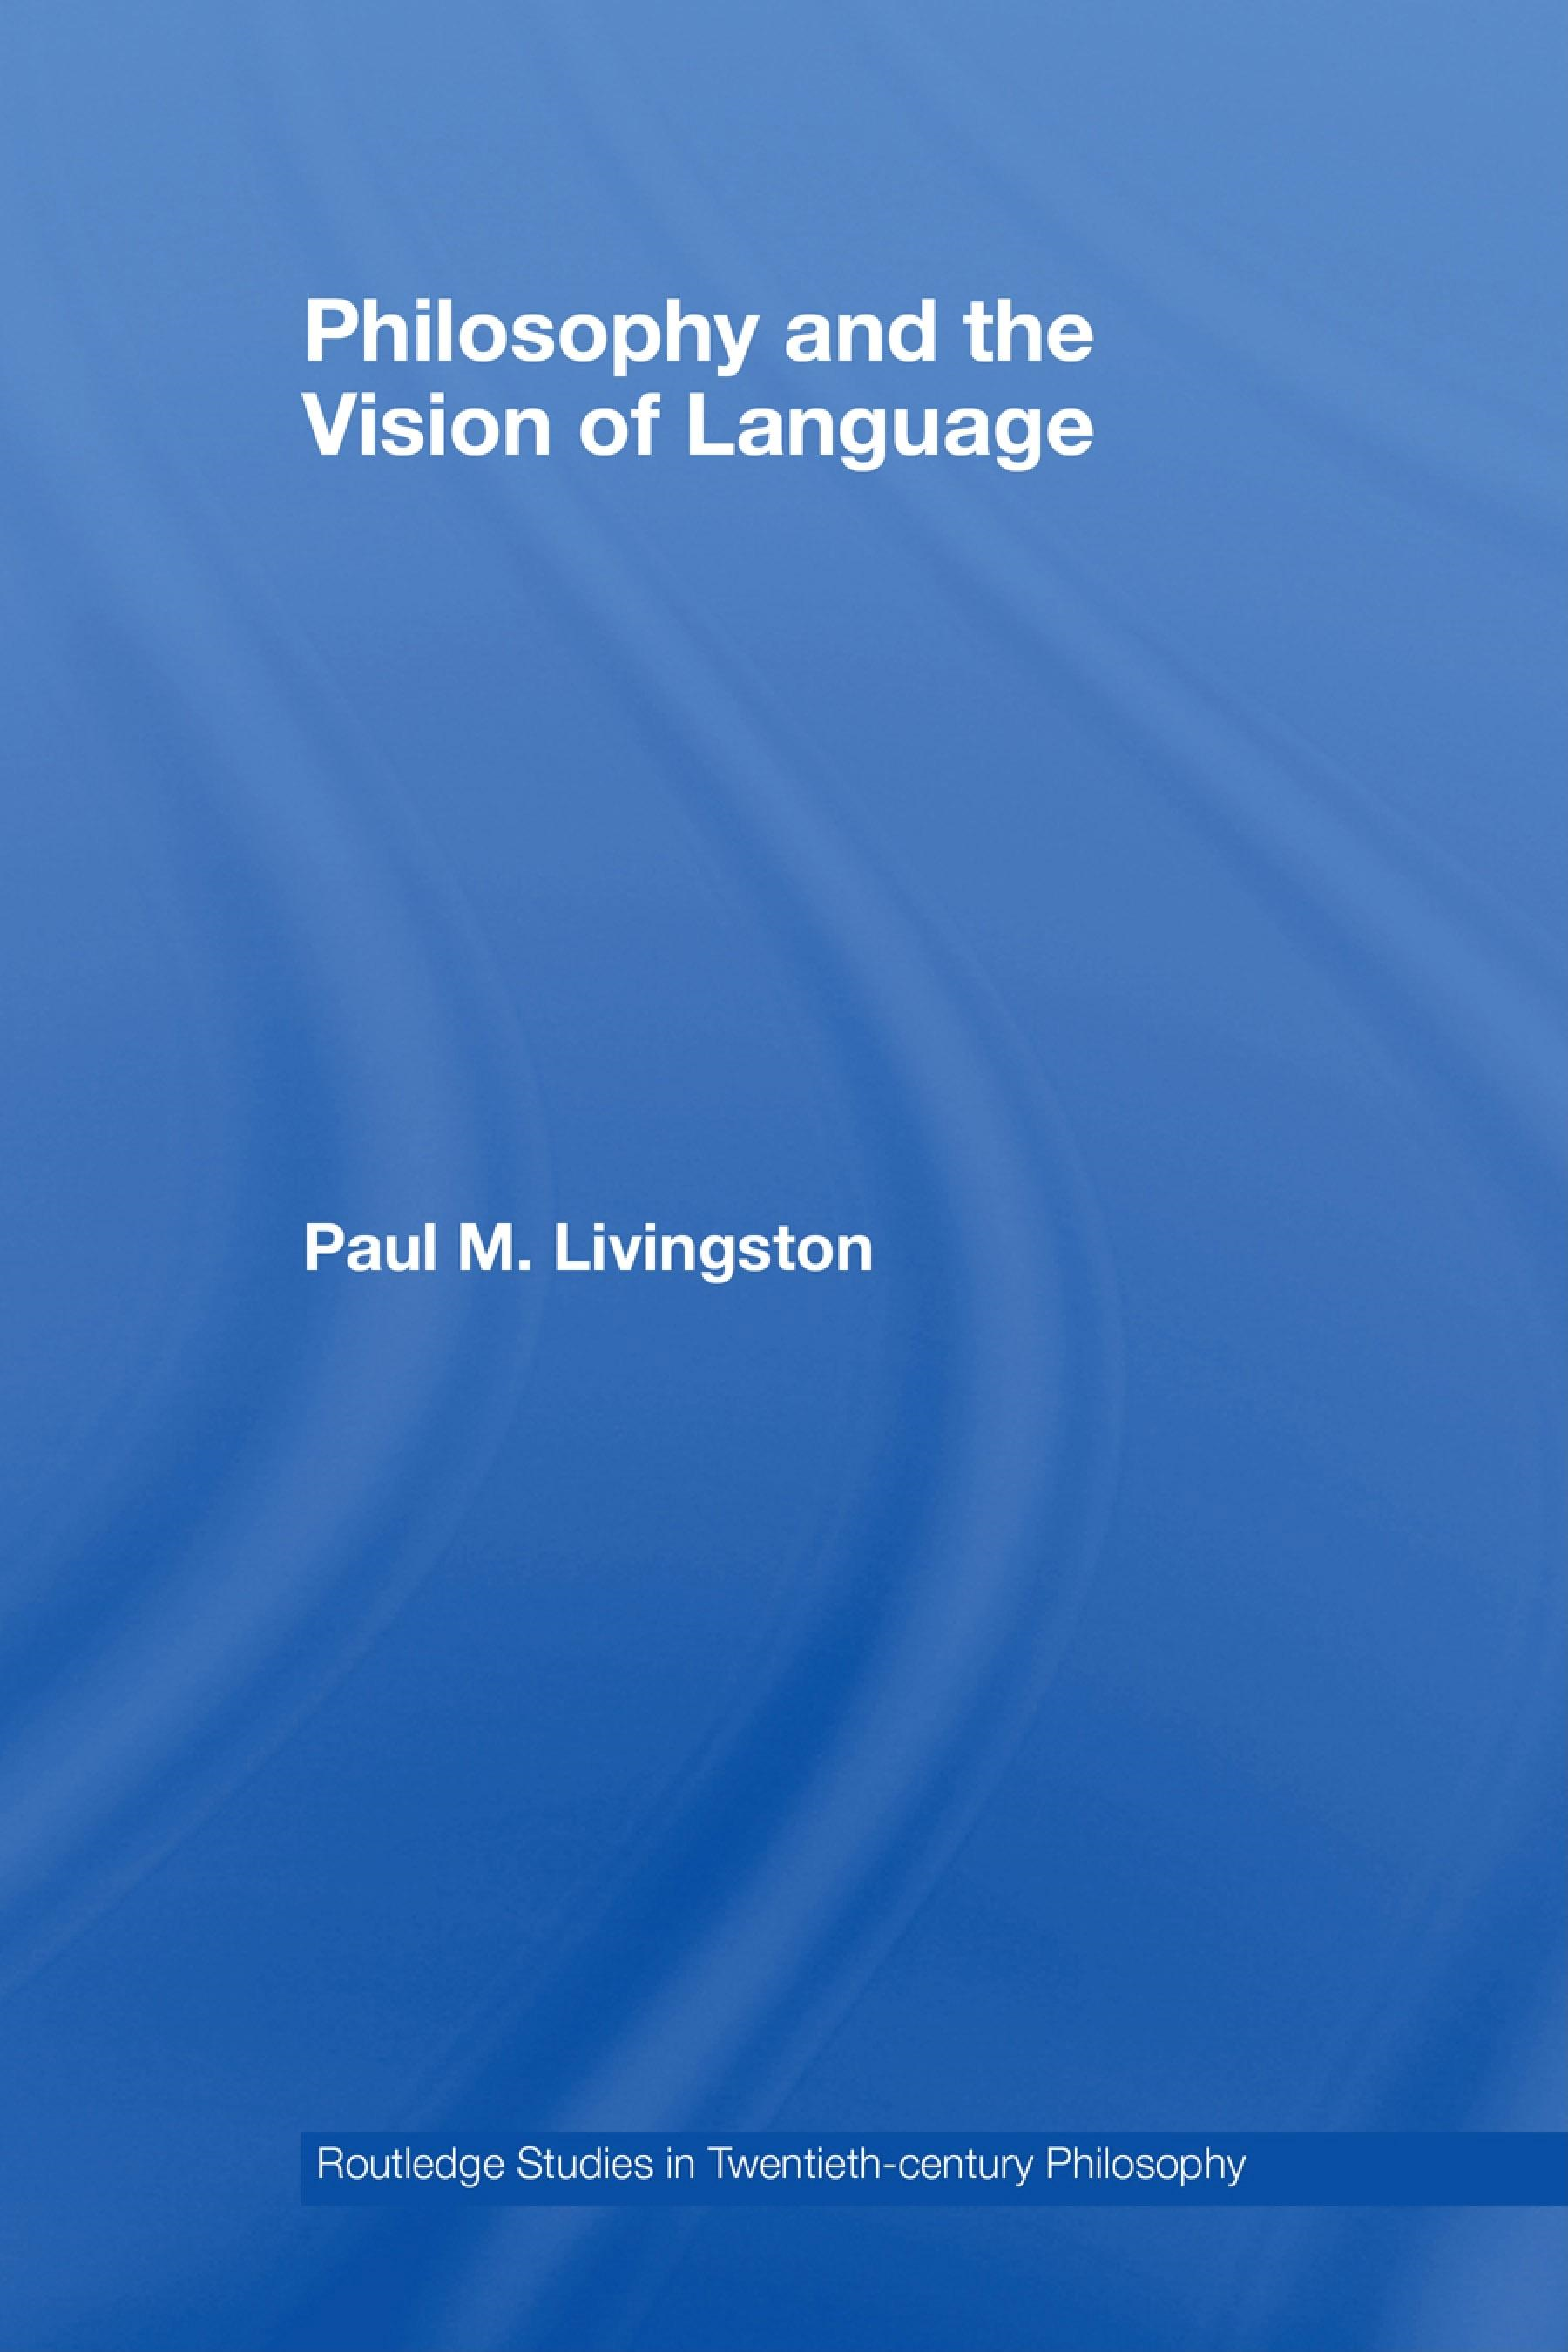 Philosophy and the Vision of Language